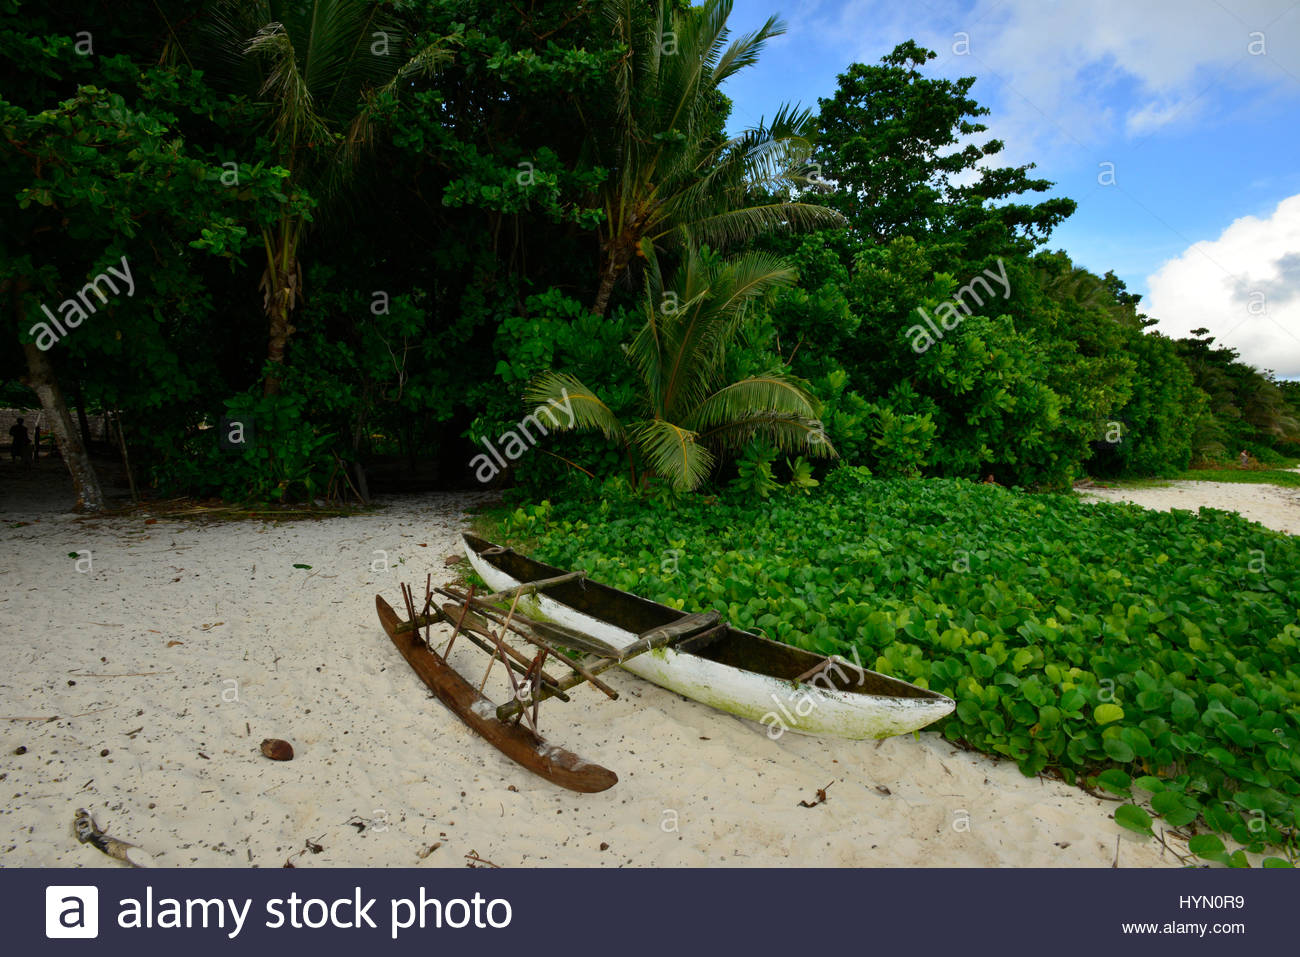 An outrigger fishing canoe on a beach on Tikopia Island. - Stock Image